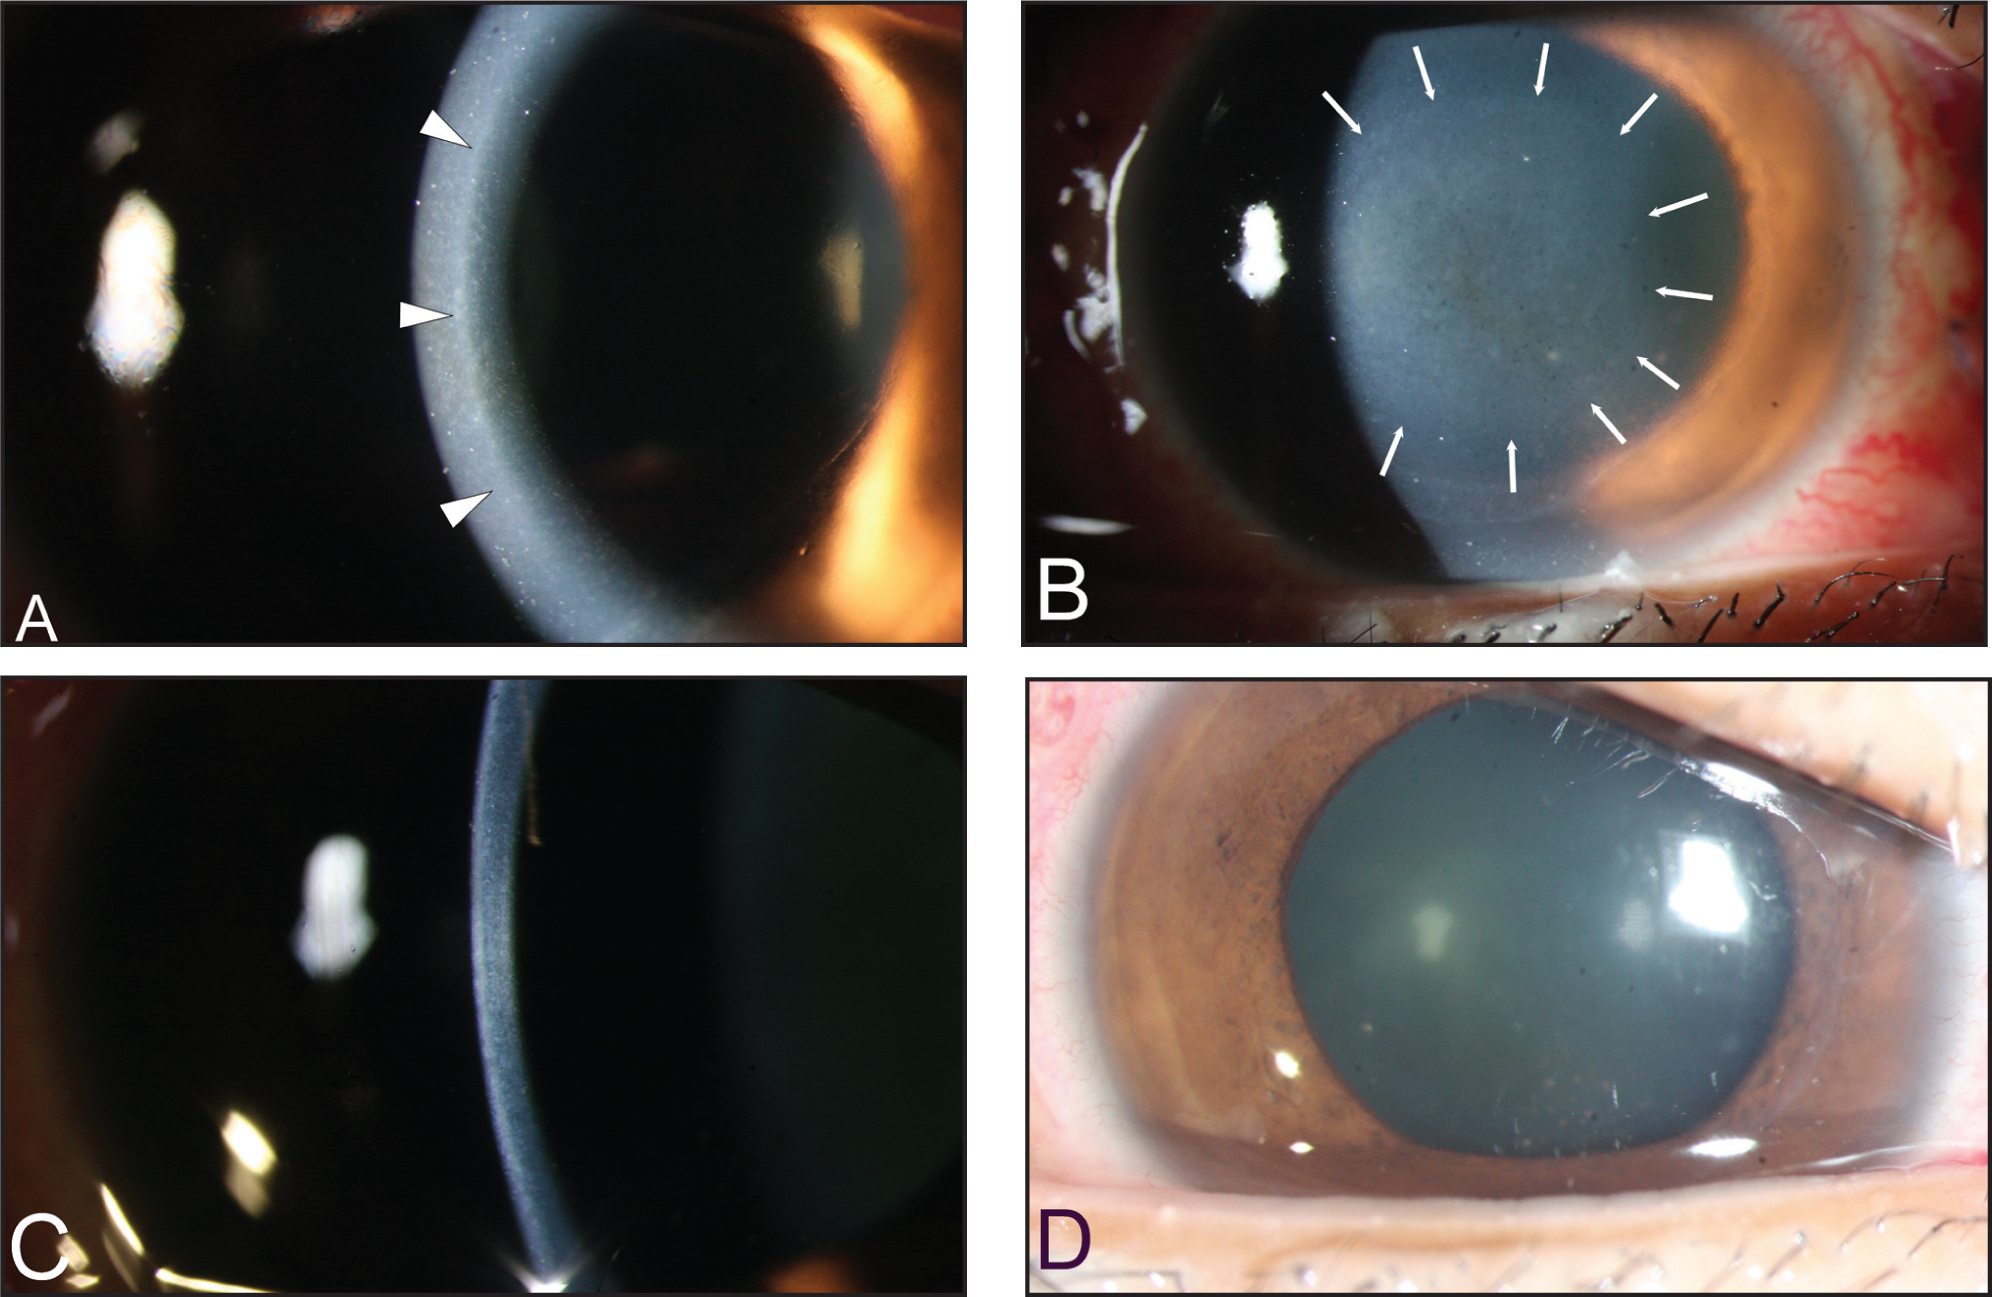 (A) Pressure-Induced Interface Keratopathy and Interface Infiltration (arrowhead). (B) Margins of the Pressure-Induced Interface Keratopathy (arrows). (C and D) the Interface Infiltration Has Resolved After Control of the Intraocular Pressure.